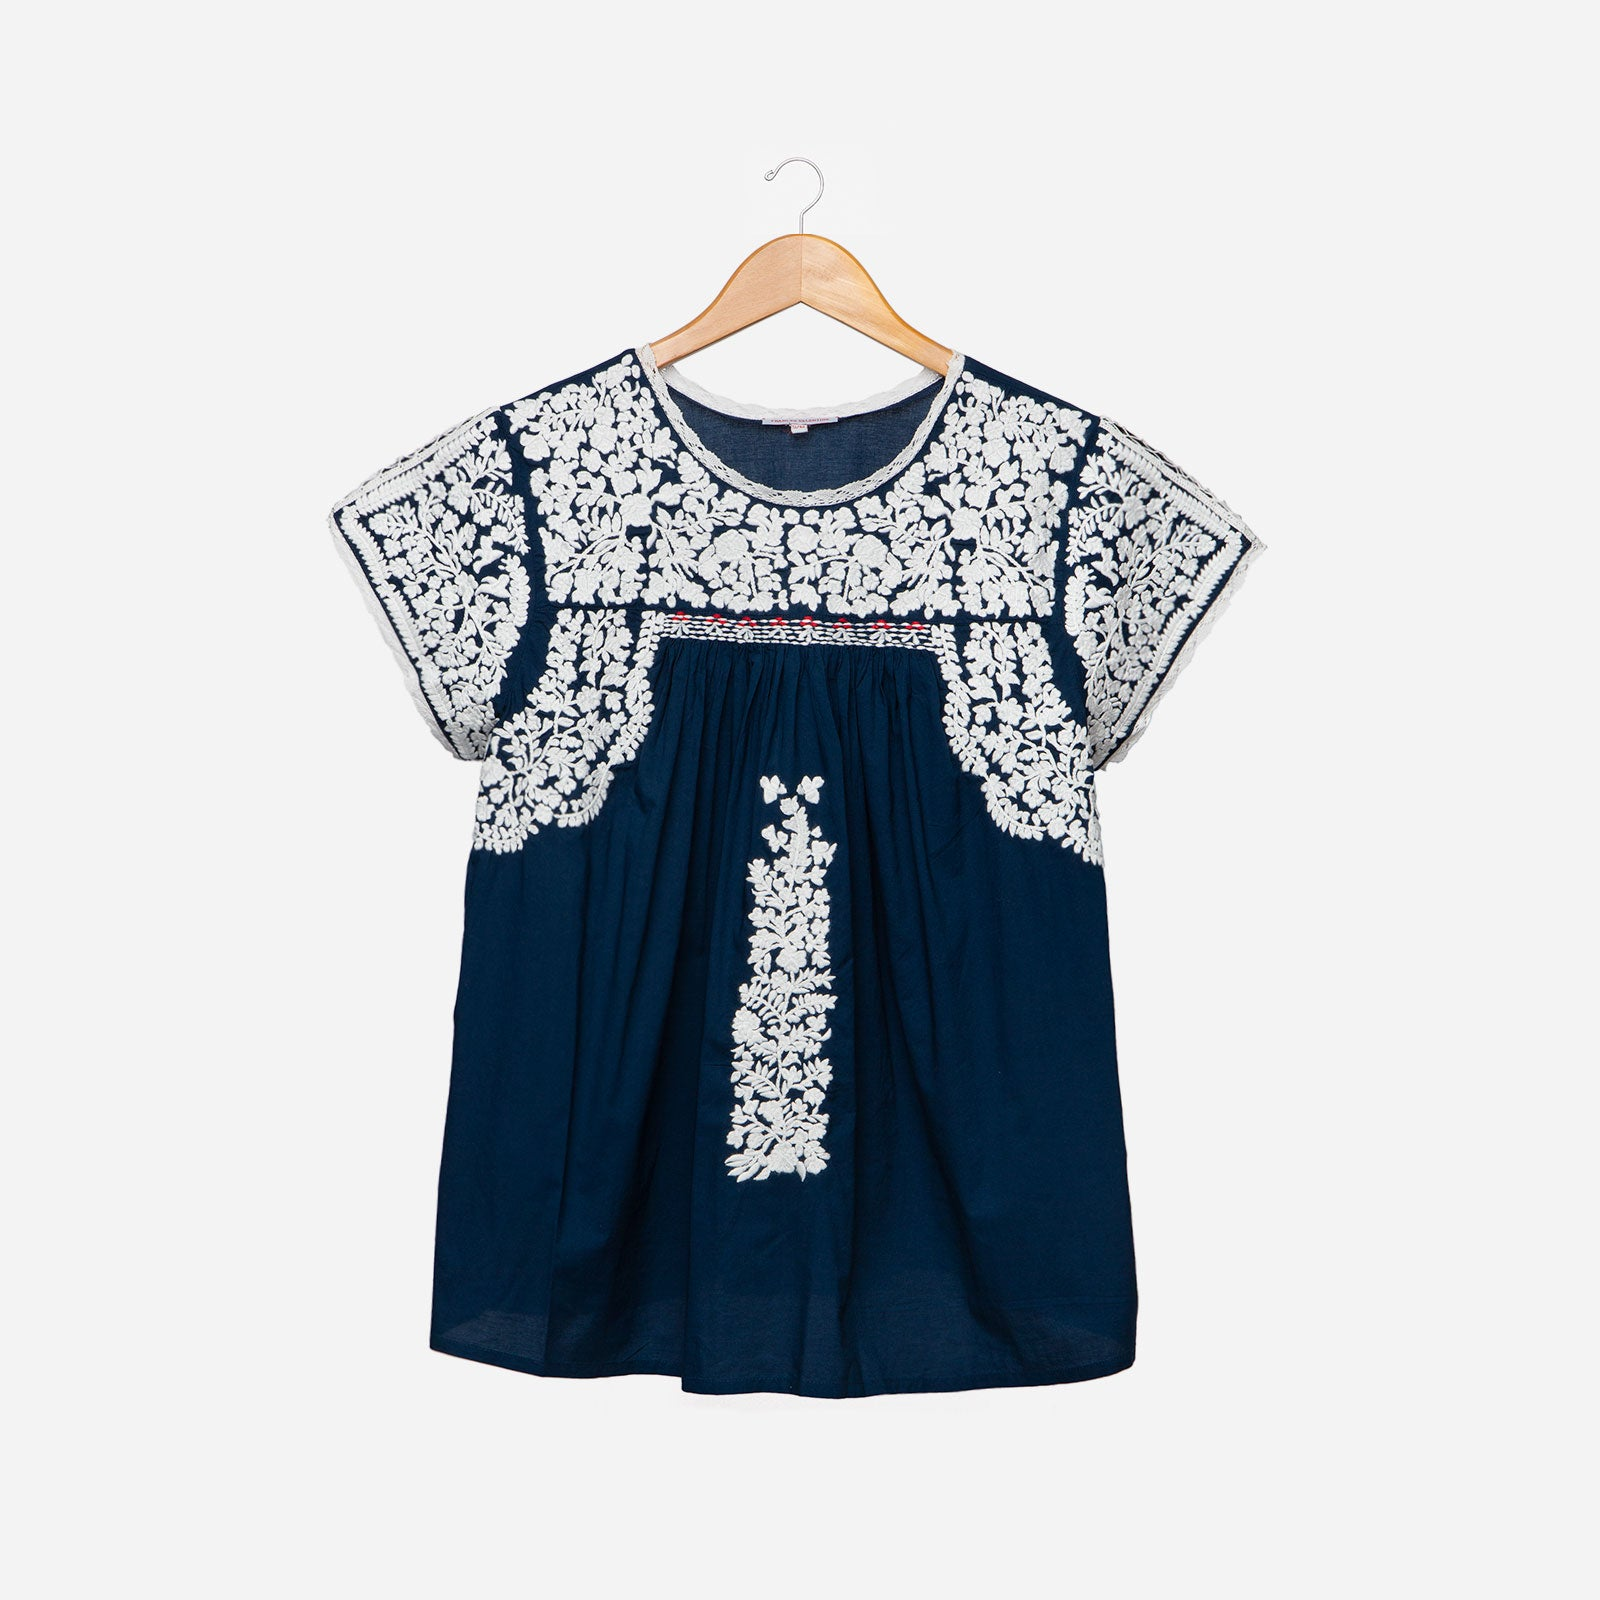 Floral Embroidered Lace Top Navy Oyster - Frances Valentine